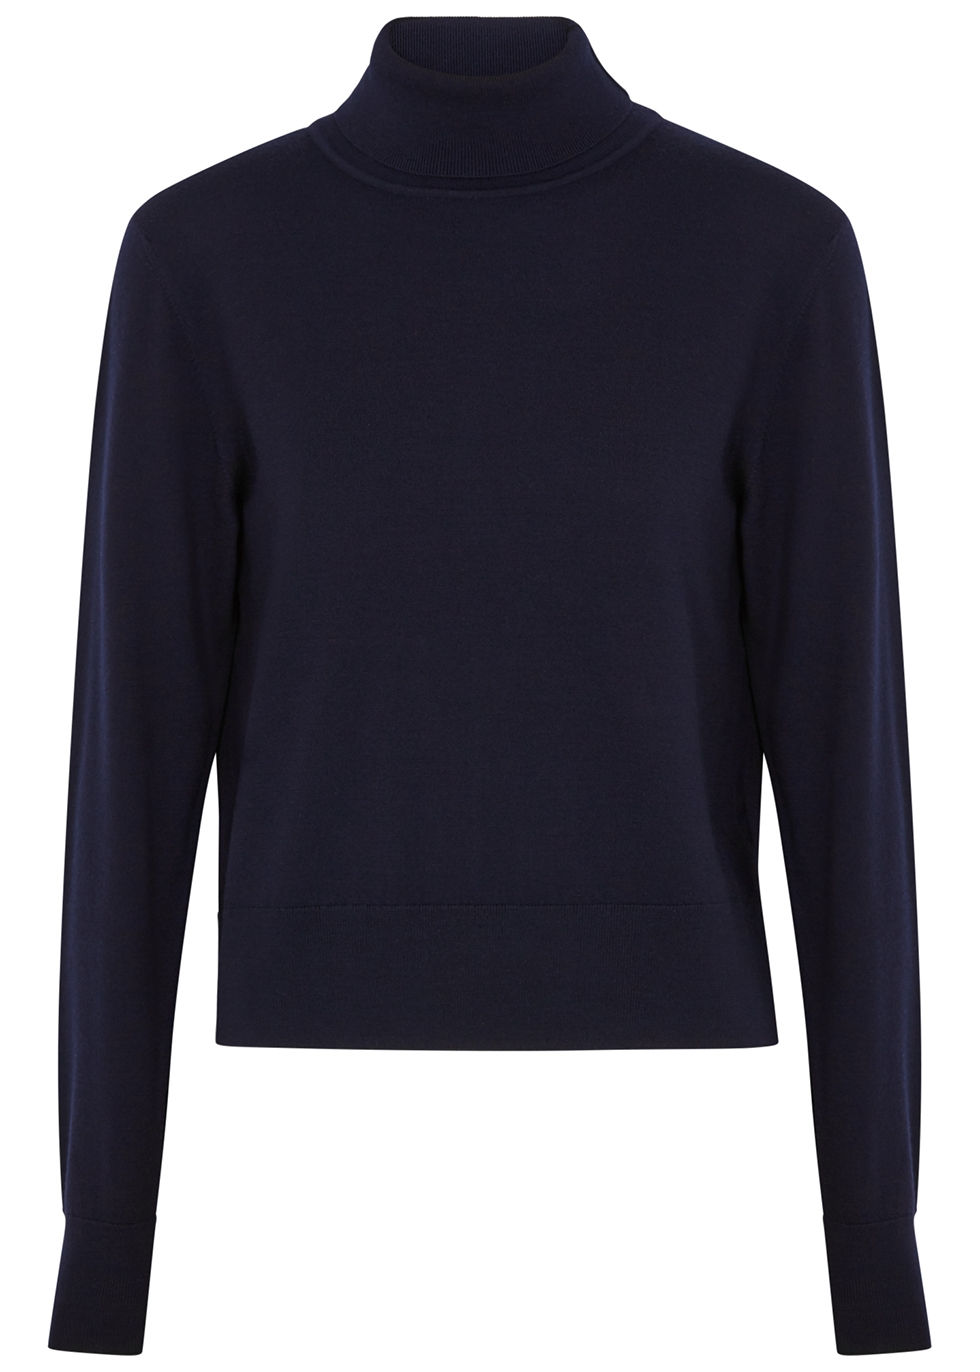 Chanic navy wool-blend jumper